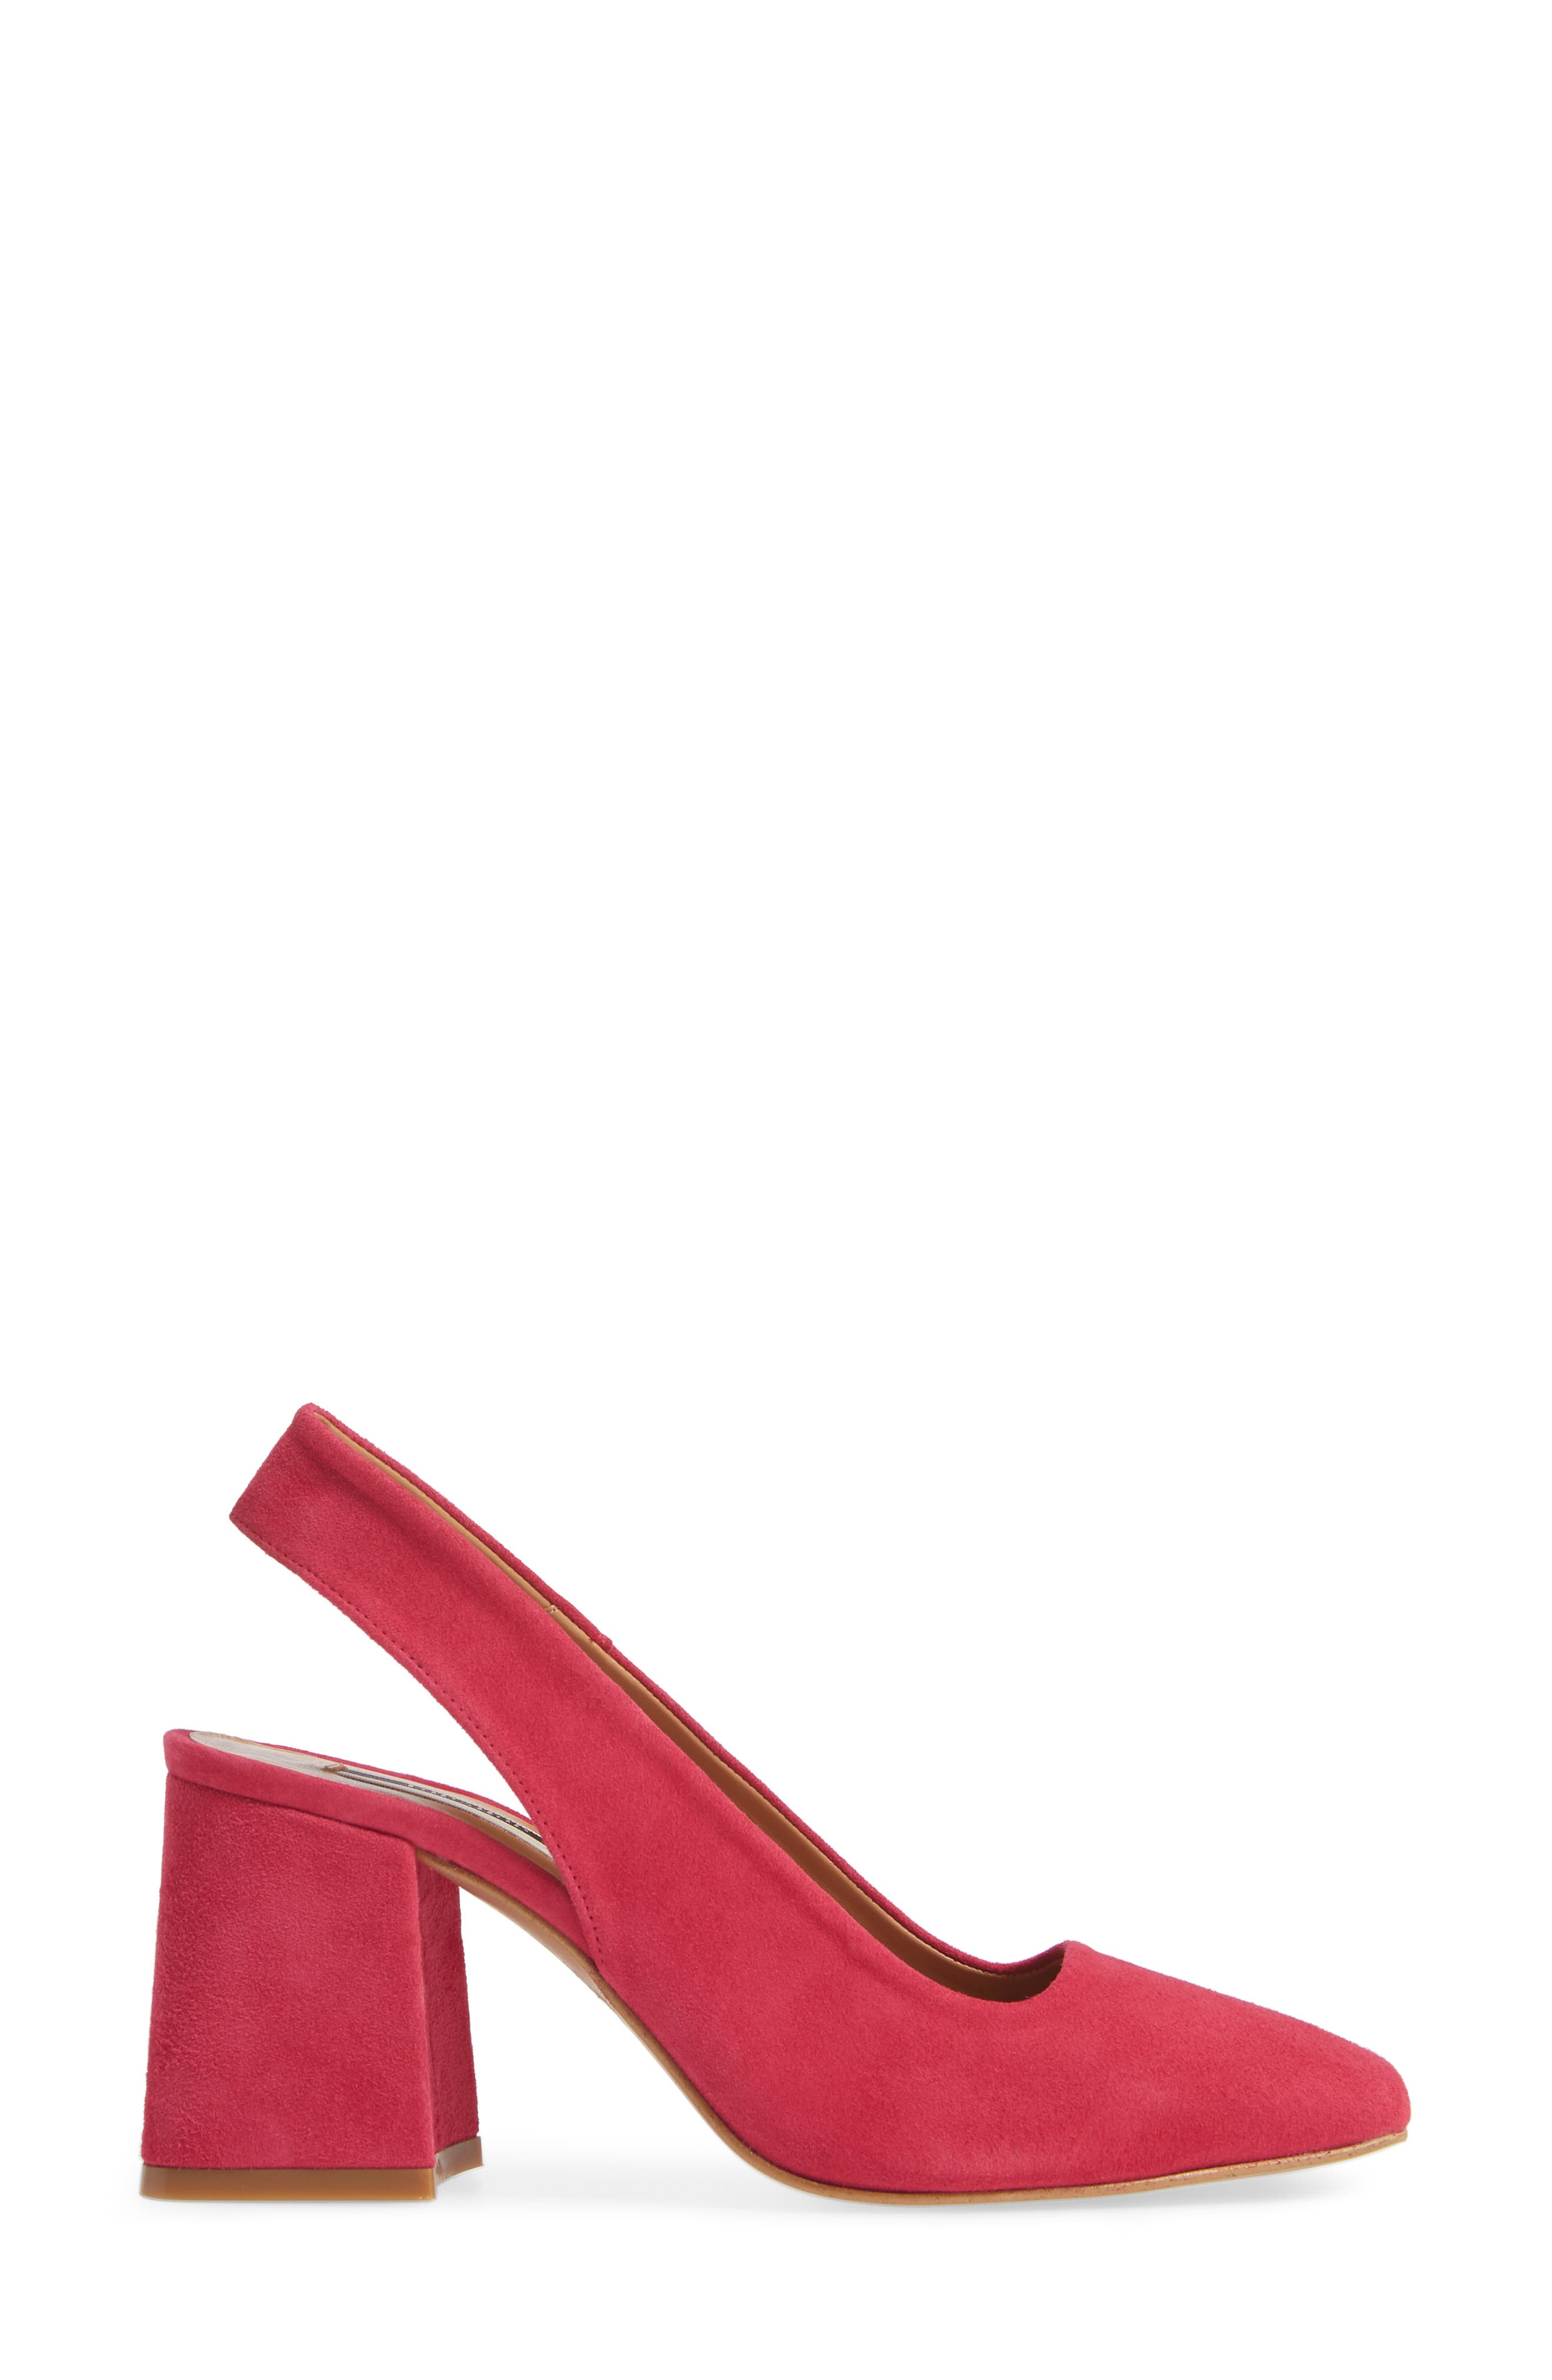 Gainor Block Heel Slingback Pump,                             Alternate thumbnail 3, color,                             PINK